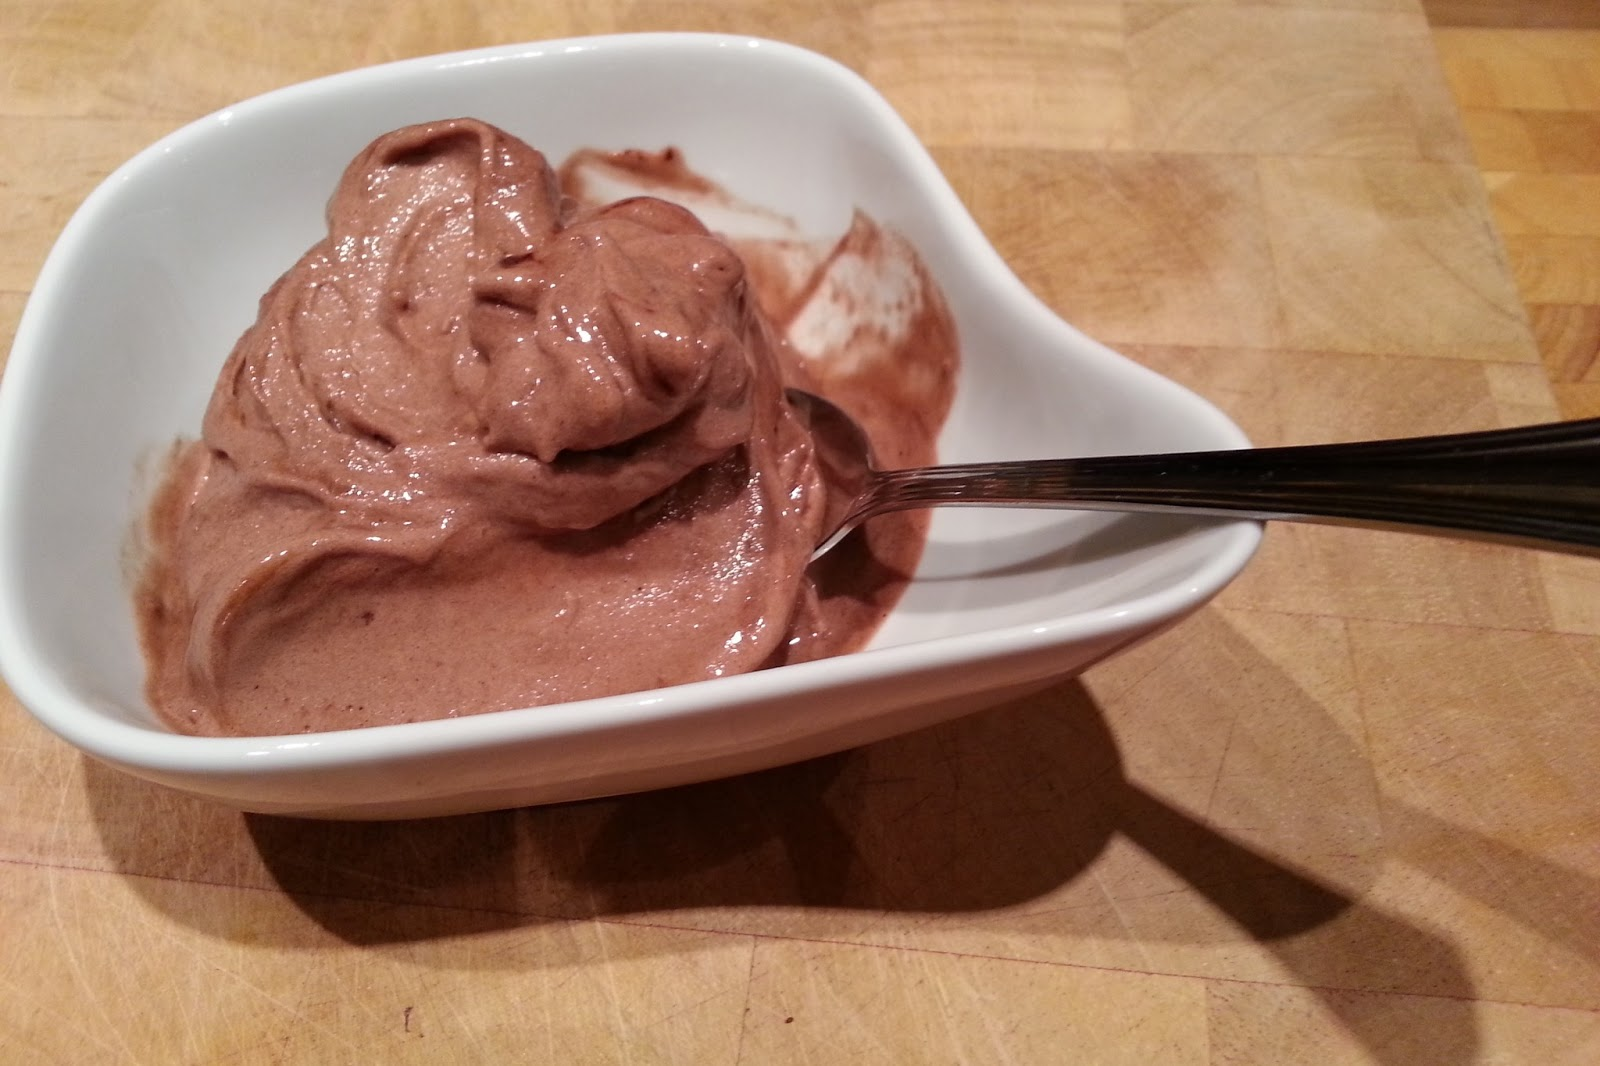 Slimming World Delights: Chocolate Banana Ice cream